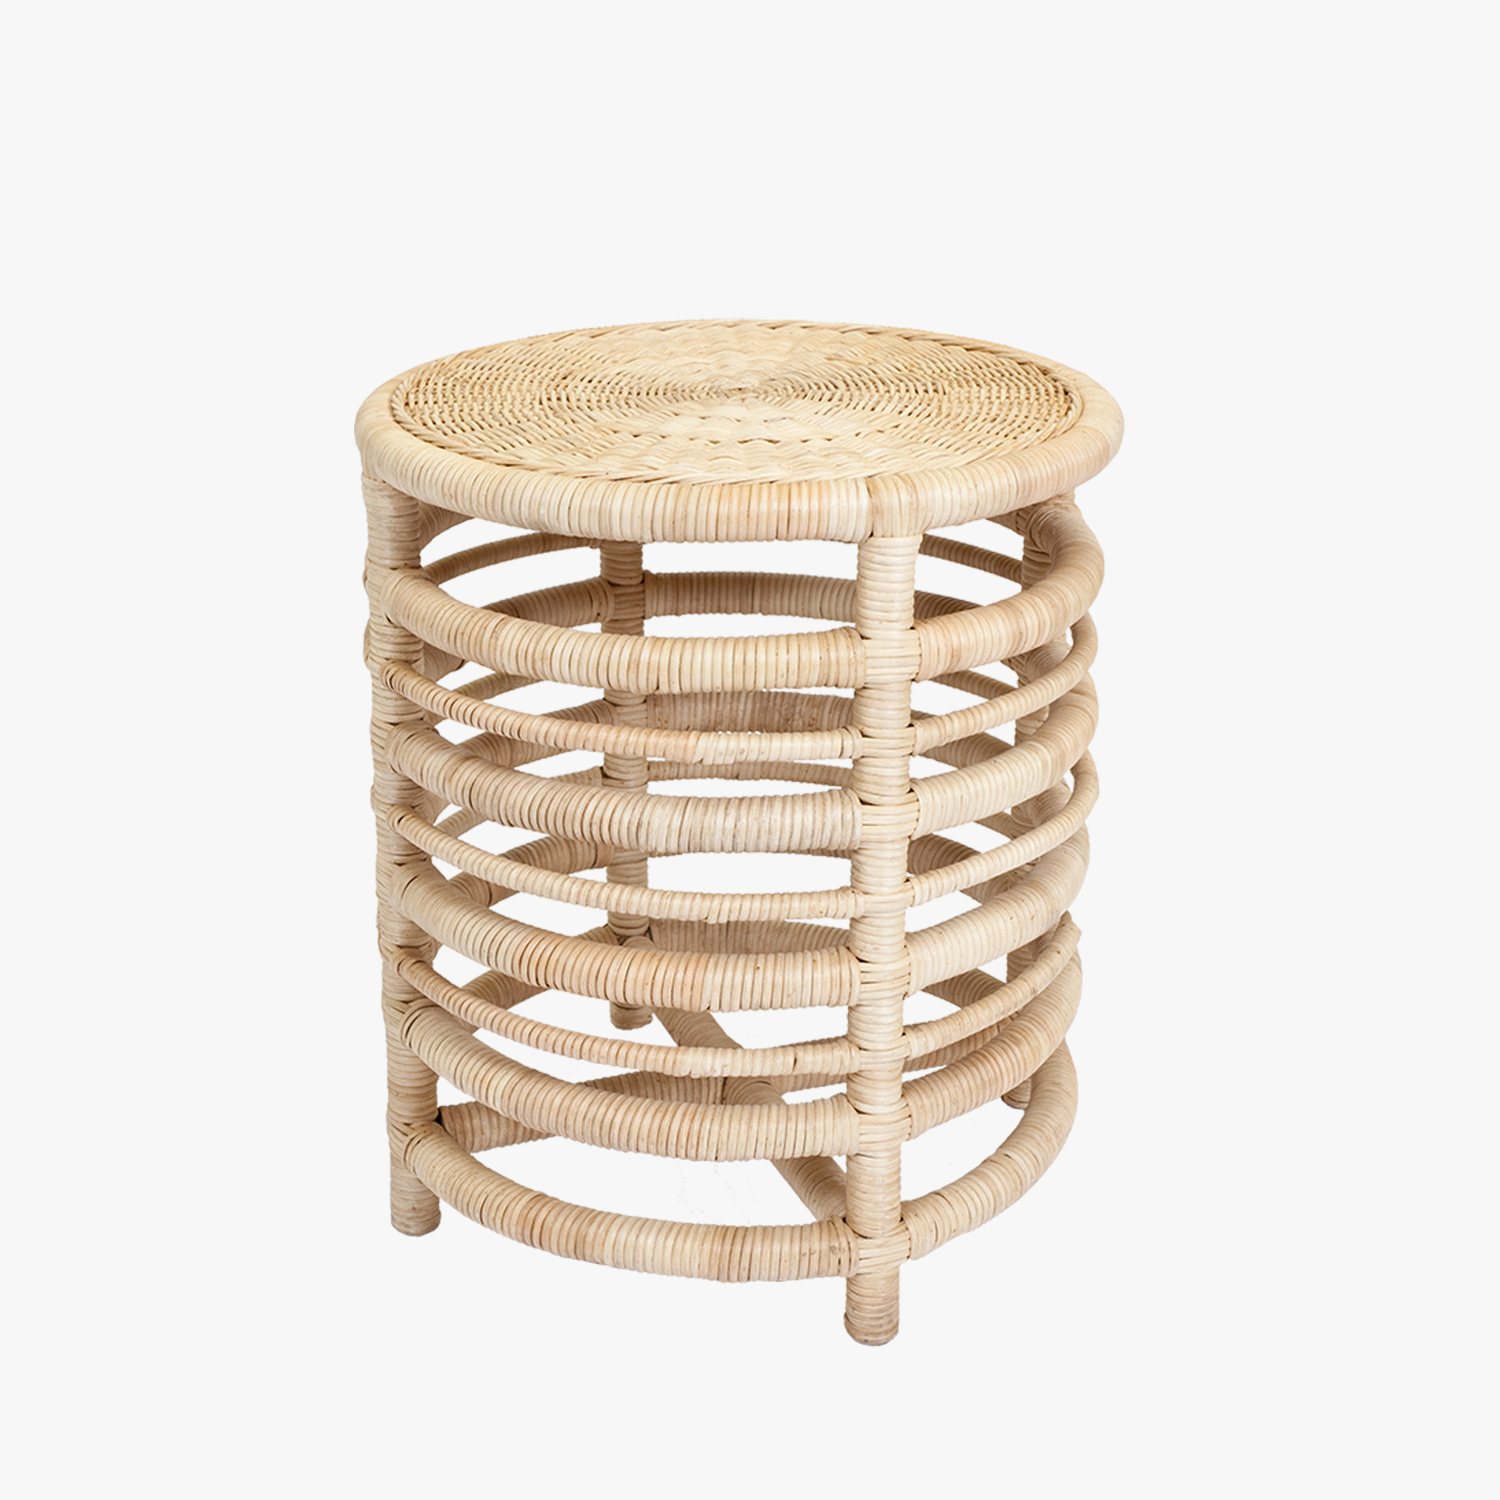 montauk natural rattan side table accent tables dear keaton outdoor wicker vinyl floor door strip dining set lack nightstand marble bedside with drawer modern lights pier one